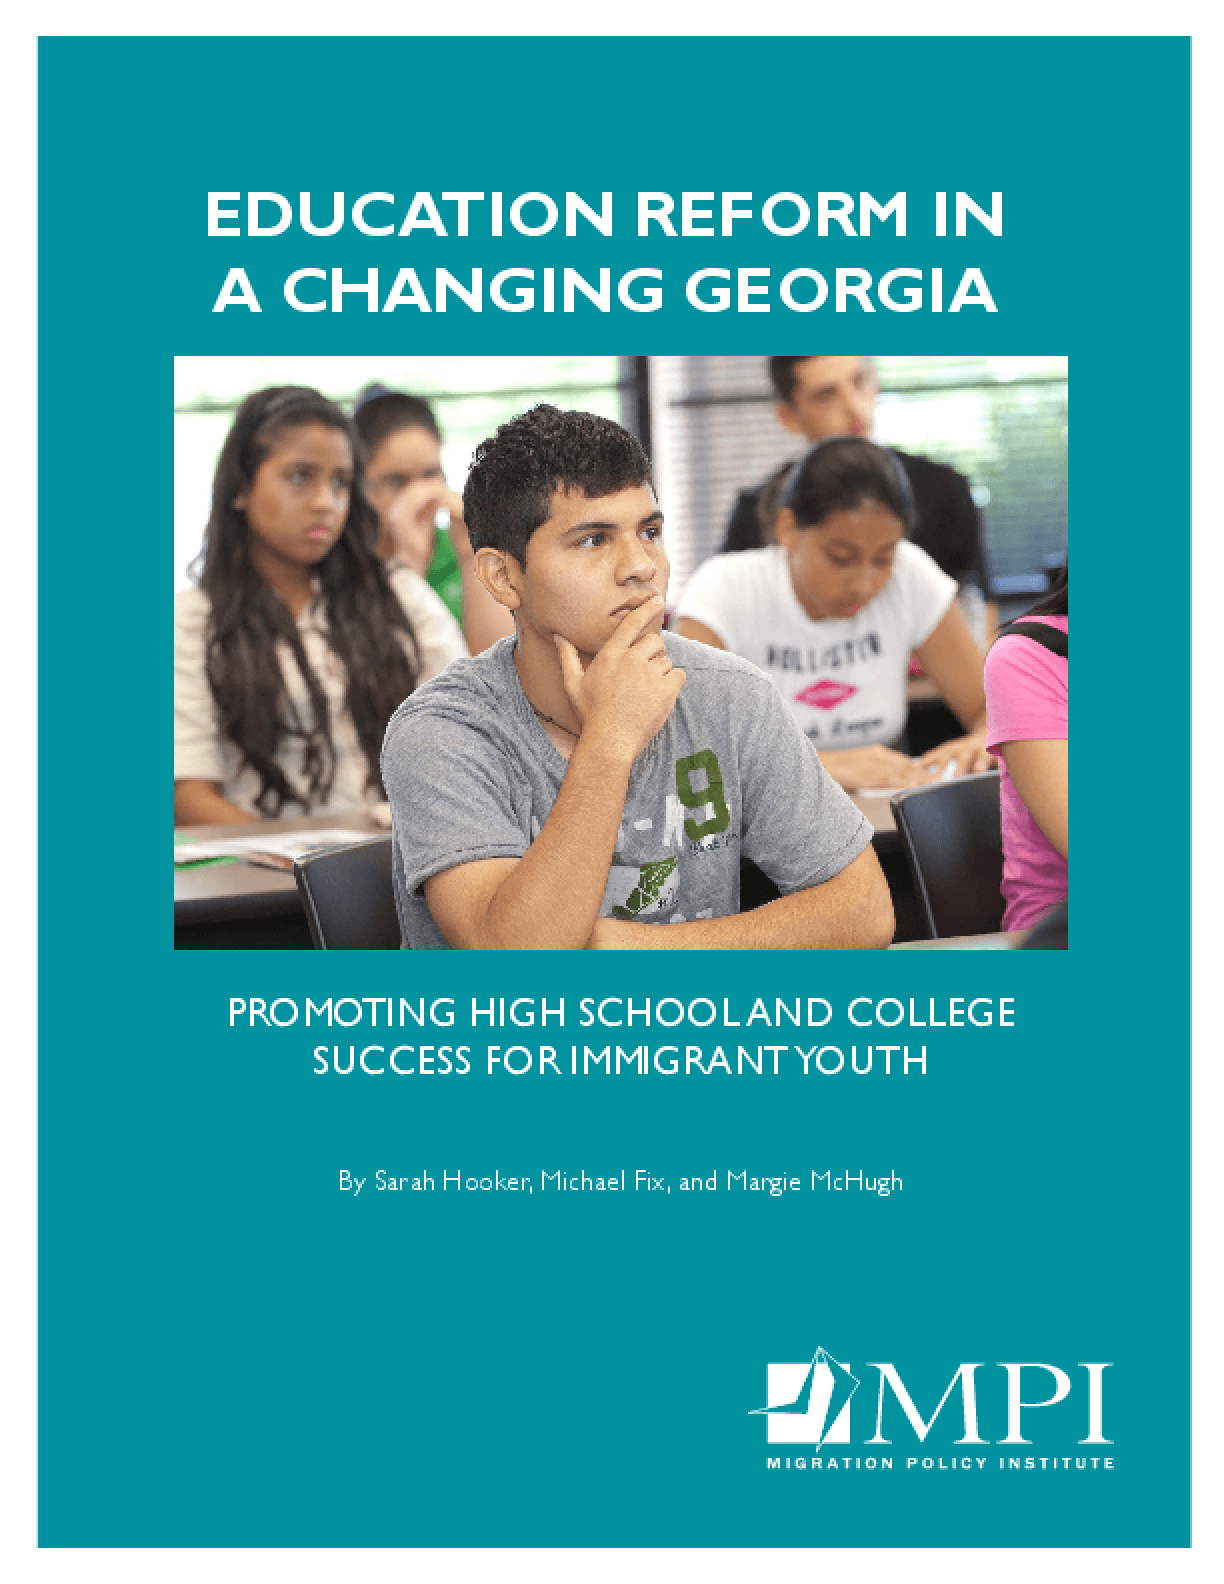 Education Reform in a Changing Georgia: Promoting High School and College Success for Immigrant Youth